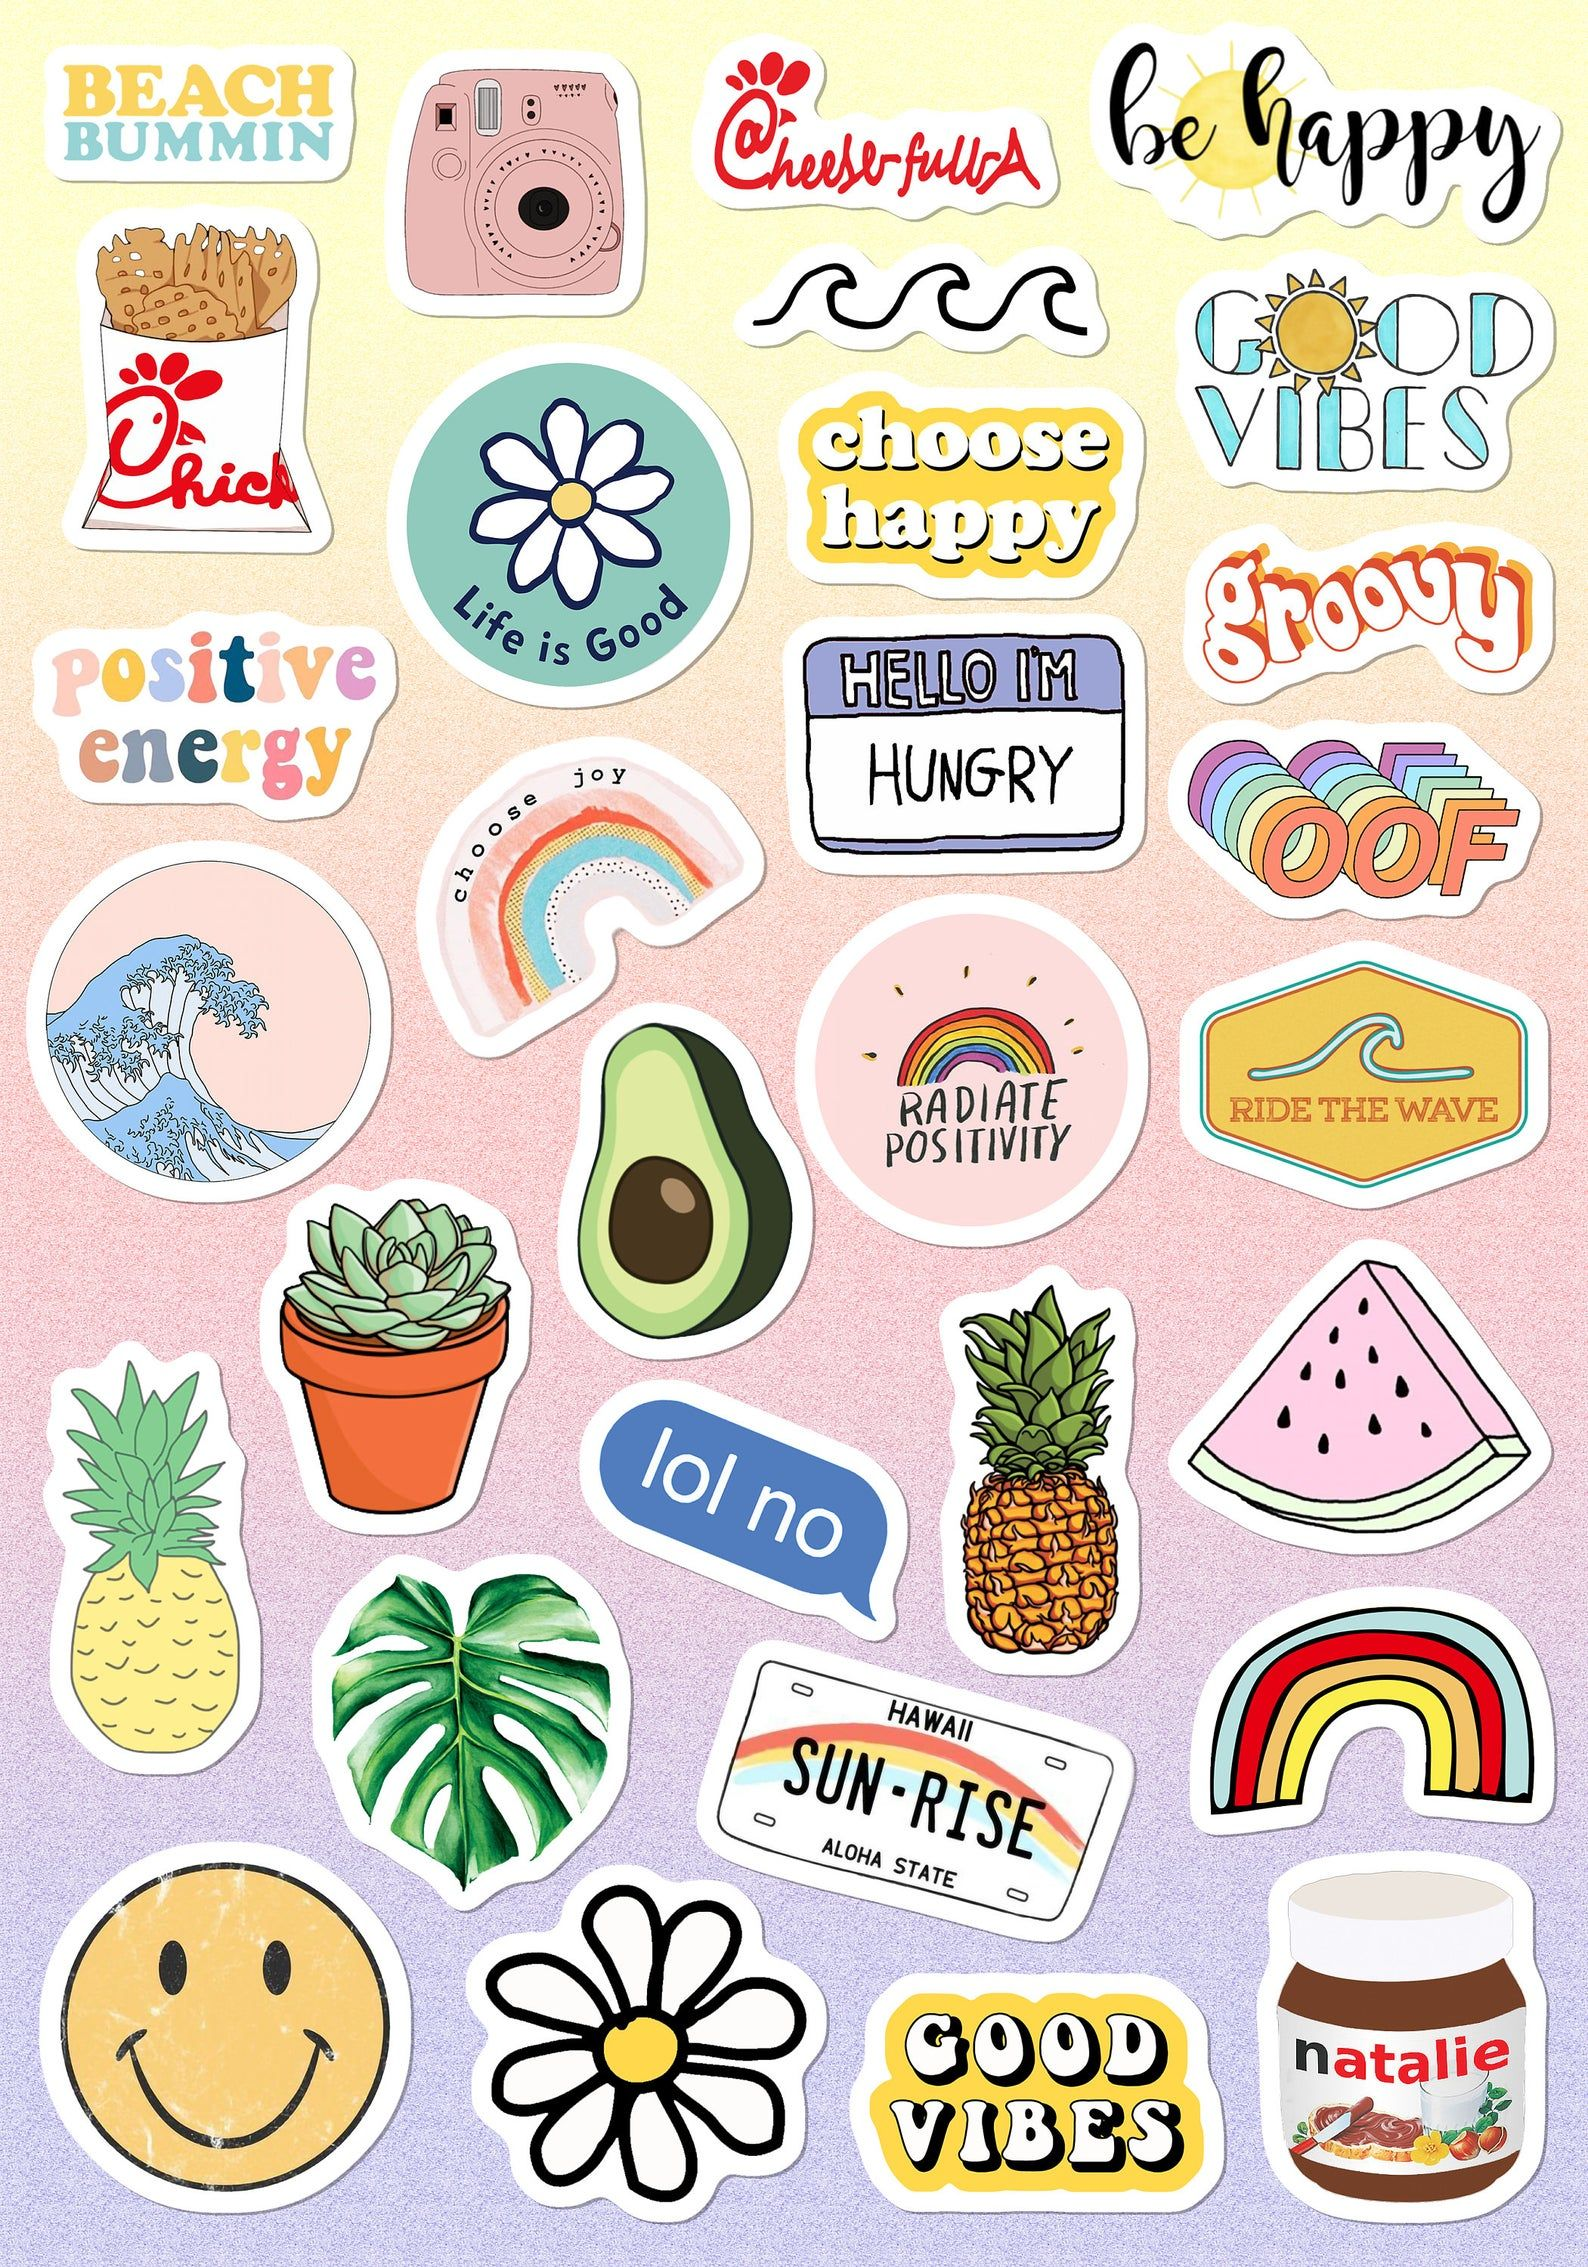 Small Large Stickers Light Pink Blue Yellow Vsco Girls Stickers For Phone Case About 1x1 Inch For Laptop Bottle About 2x2 Inch 30 Pcs Cute Stickers Iphone Case Stickers Girl Stickers